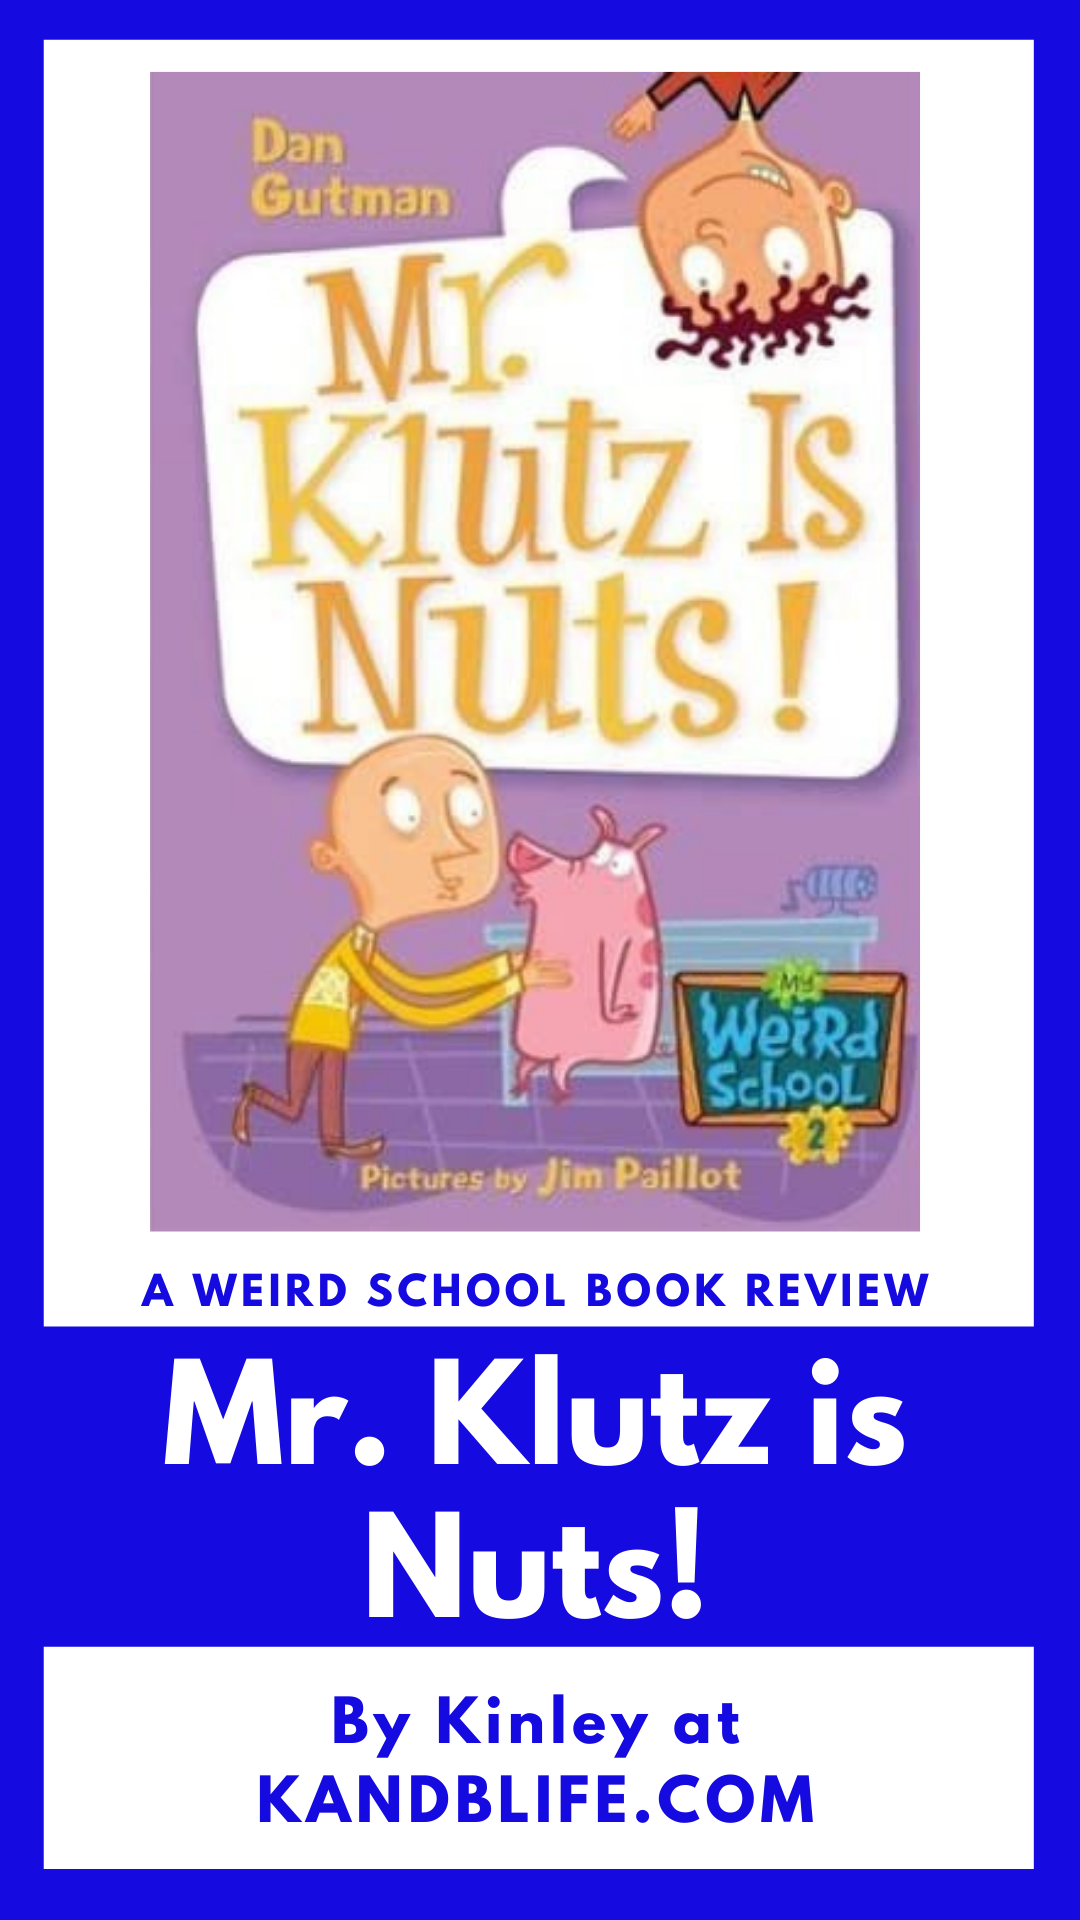 Kids Book Review on My Weird School Series, Mr. Klutz is Nuts by the kids at KANDBLIFE.COM (https://kandblife.com).